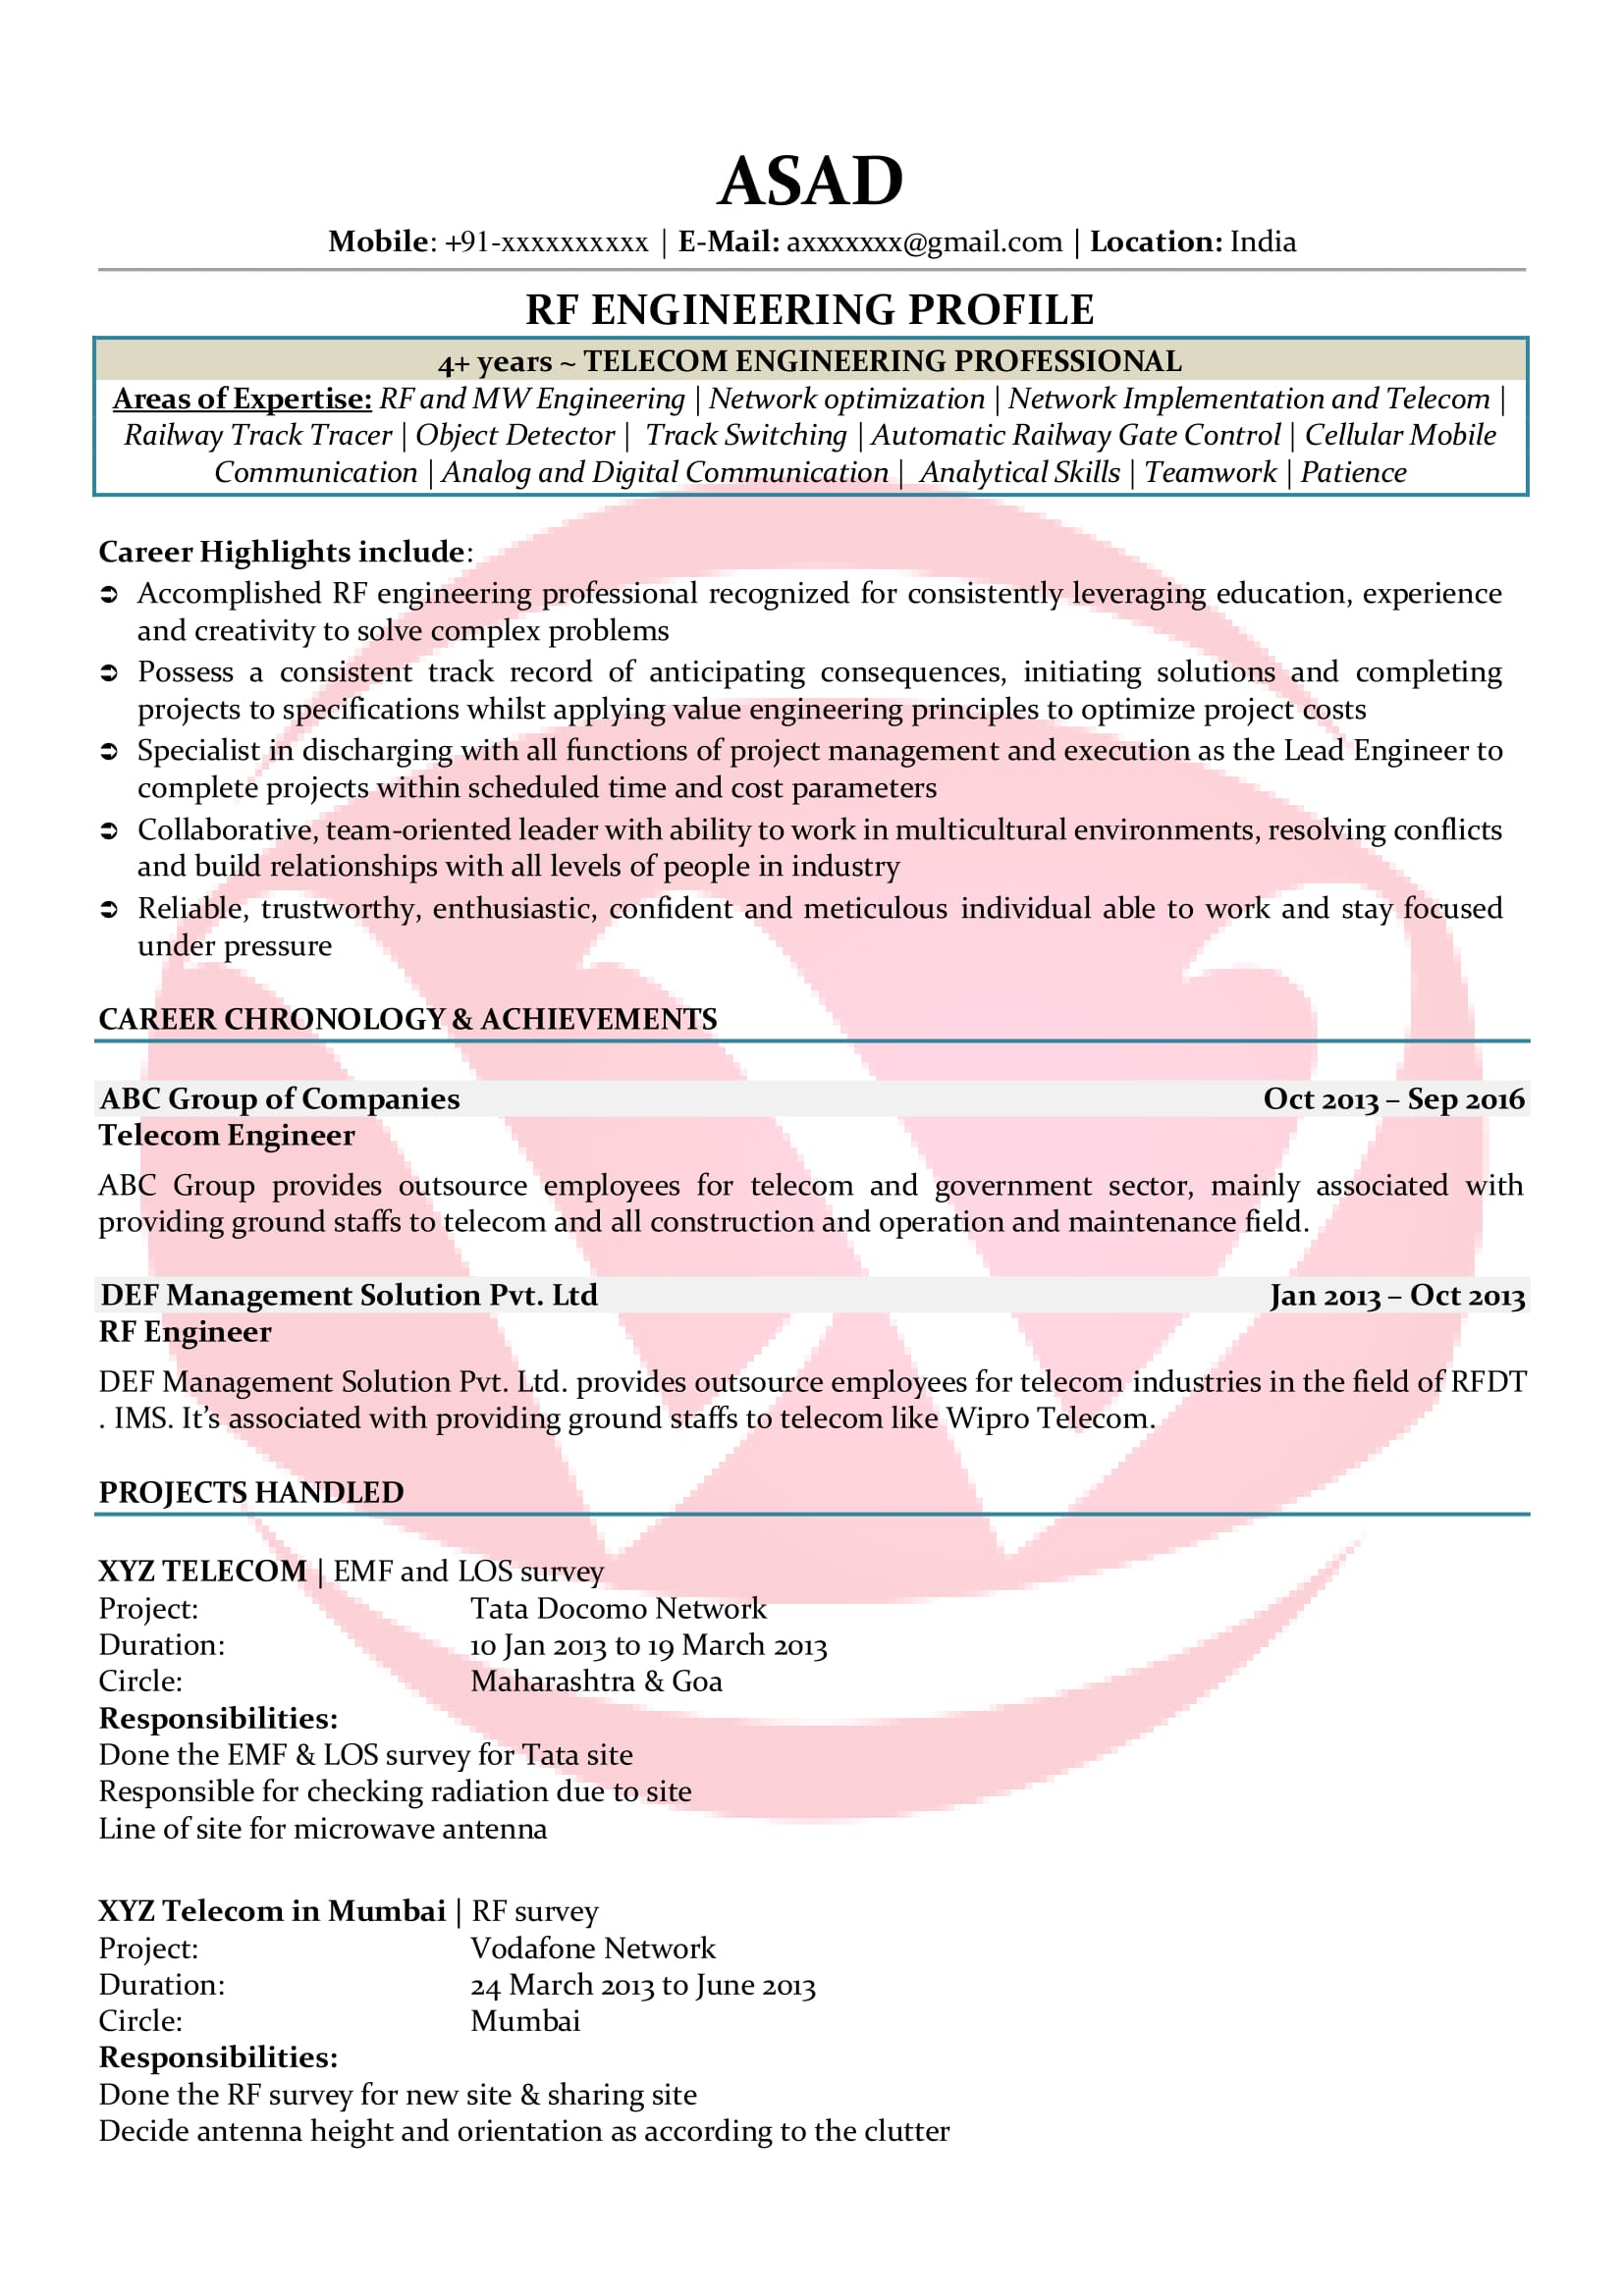 RF Engineer Sample Resumes, Download Resume Format Templates!